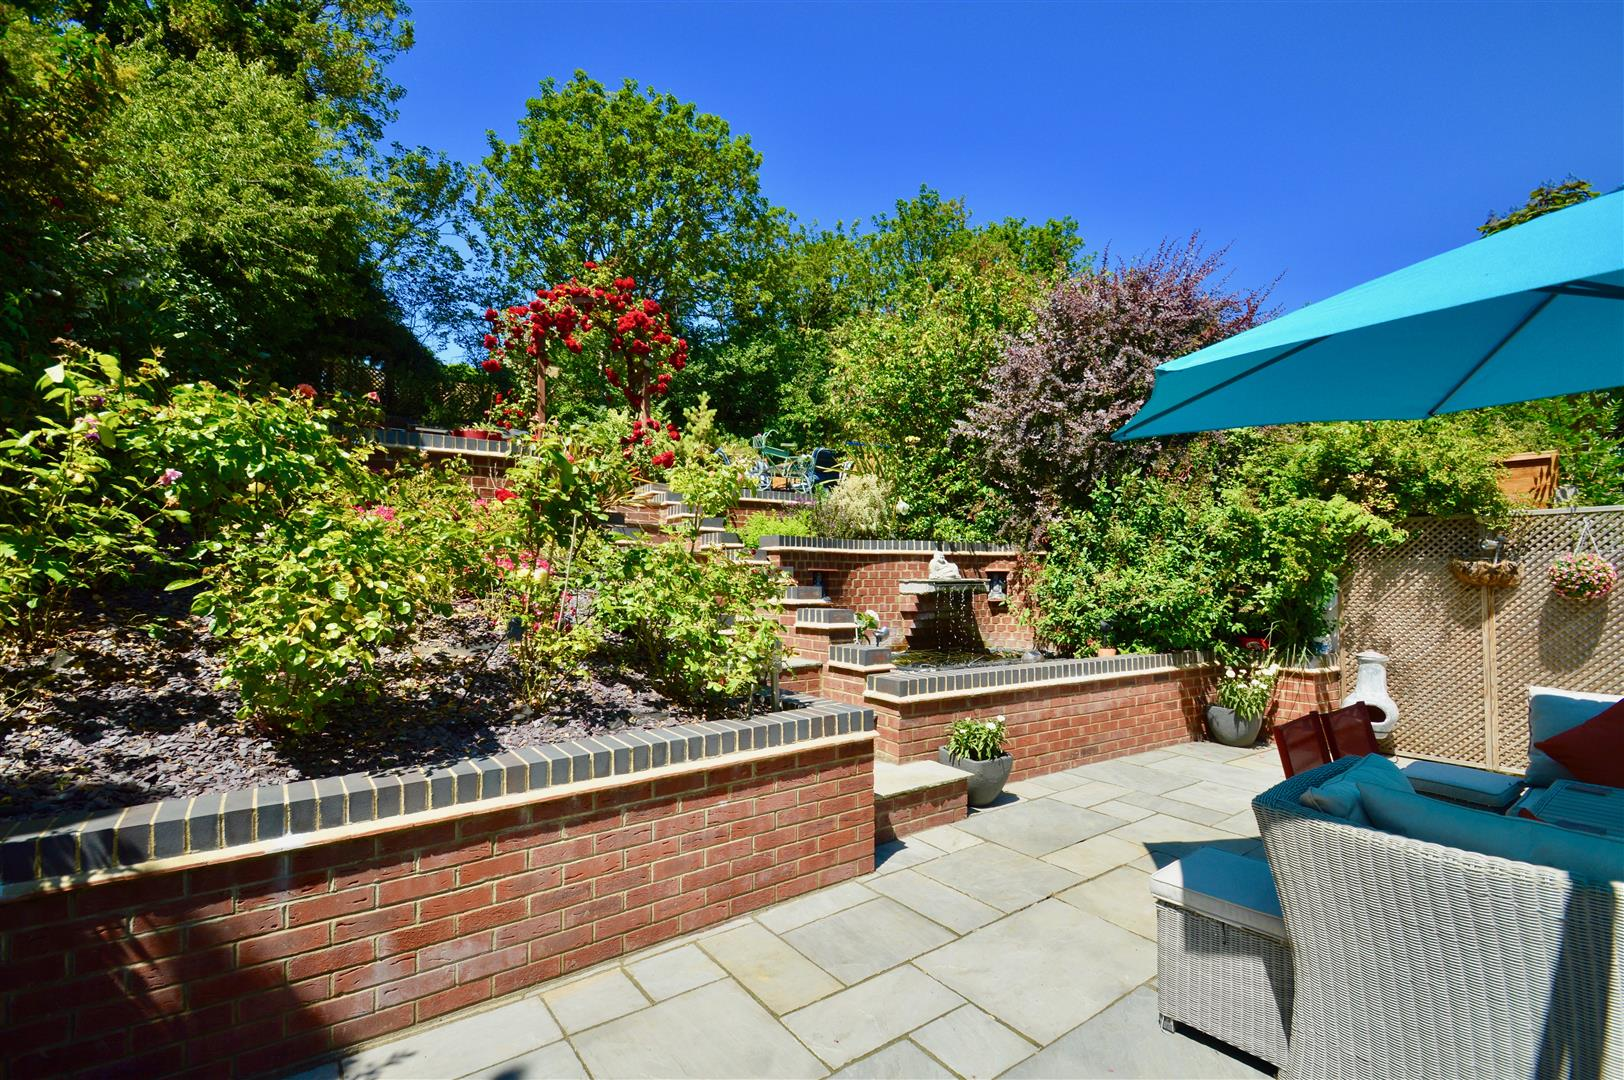 Property in Valley Drive, Gravesend, Kent, DA12 5RS